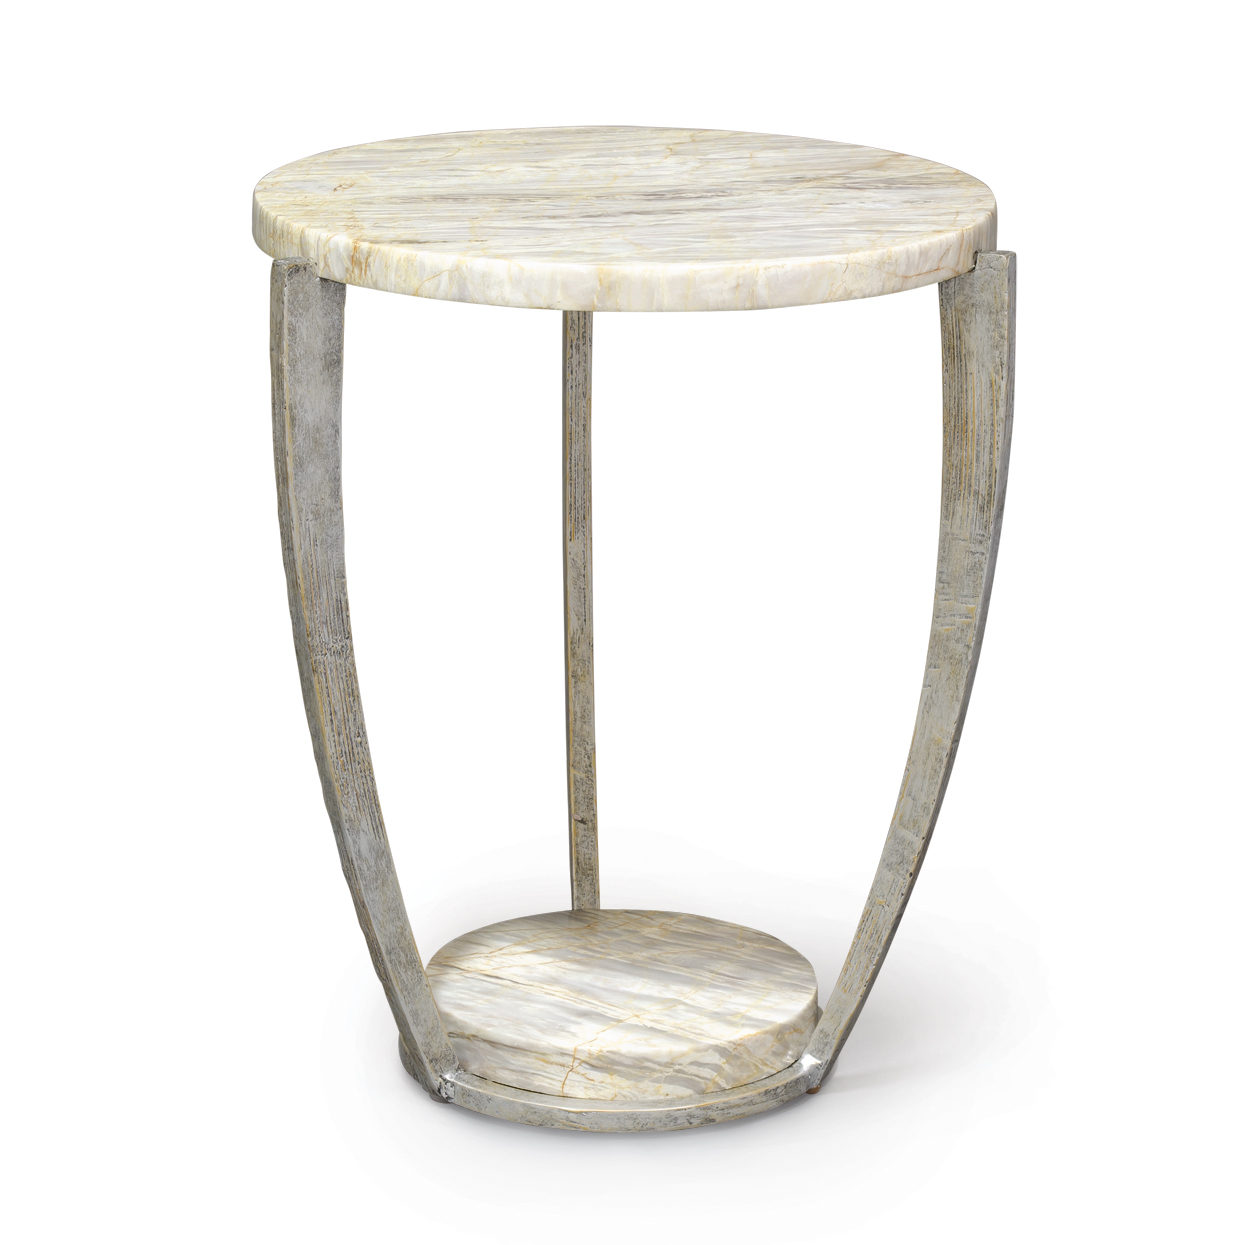 exciting marble accent table set bistro threshold top wood round small antique and faux killian target metal black white nero full size hourglass bella green mosaic outdoor sofa